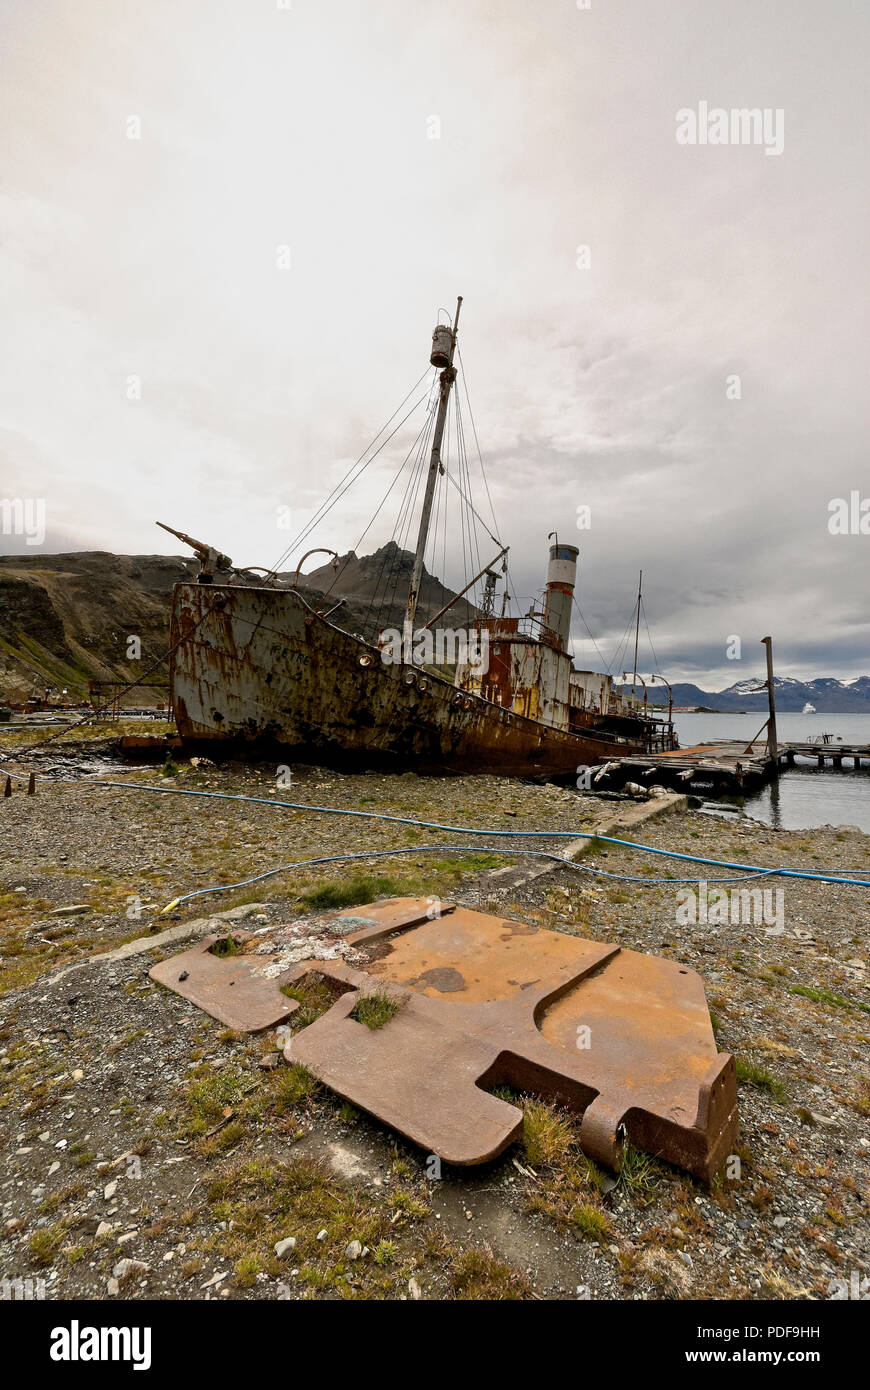 Derelict and deverticalcaying whaling ship Petrep in Grytviken harbour, South Georgia, Antartica. - Stock Image